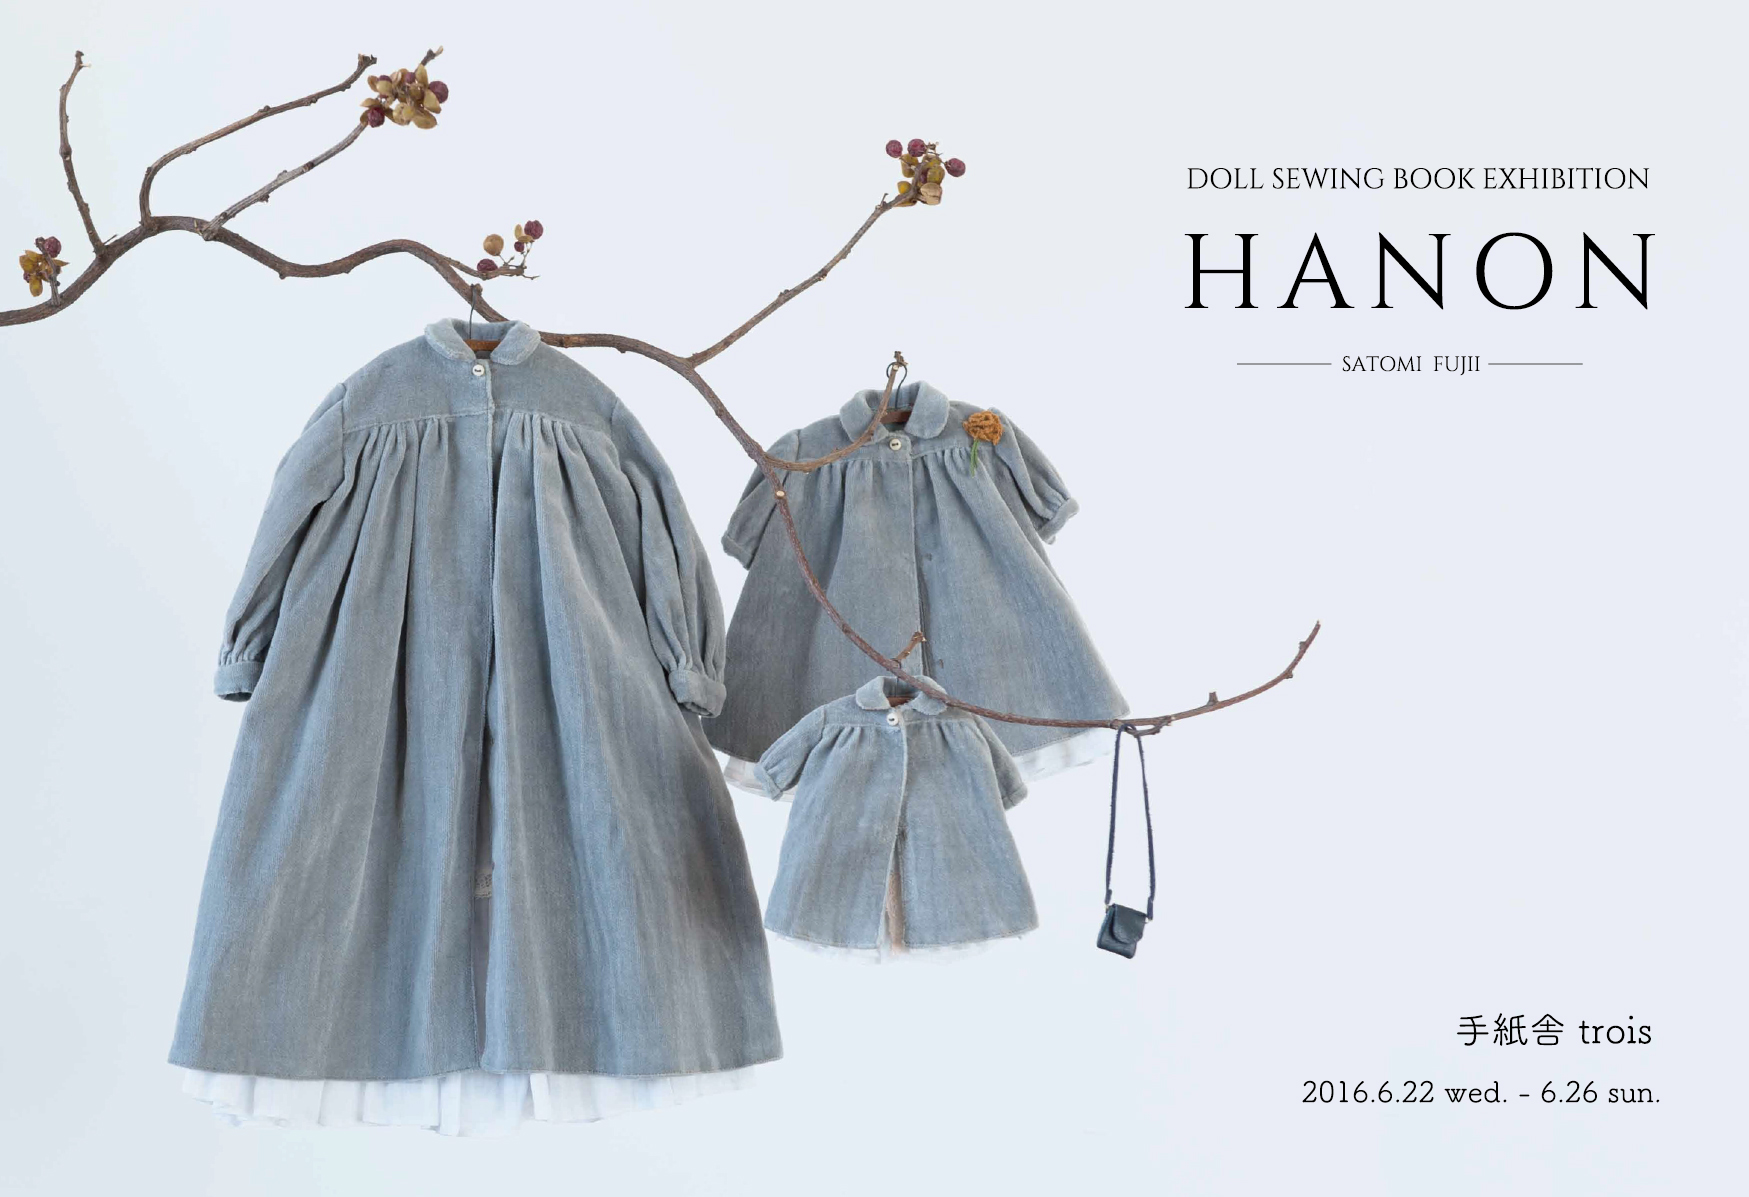 DOLL SEWING BOOK HANON EXHIBITION